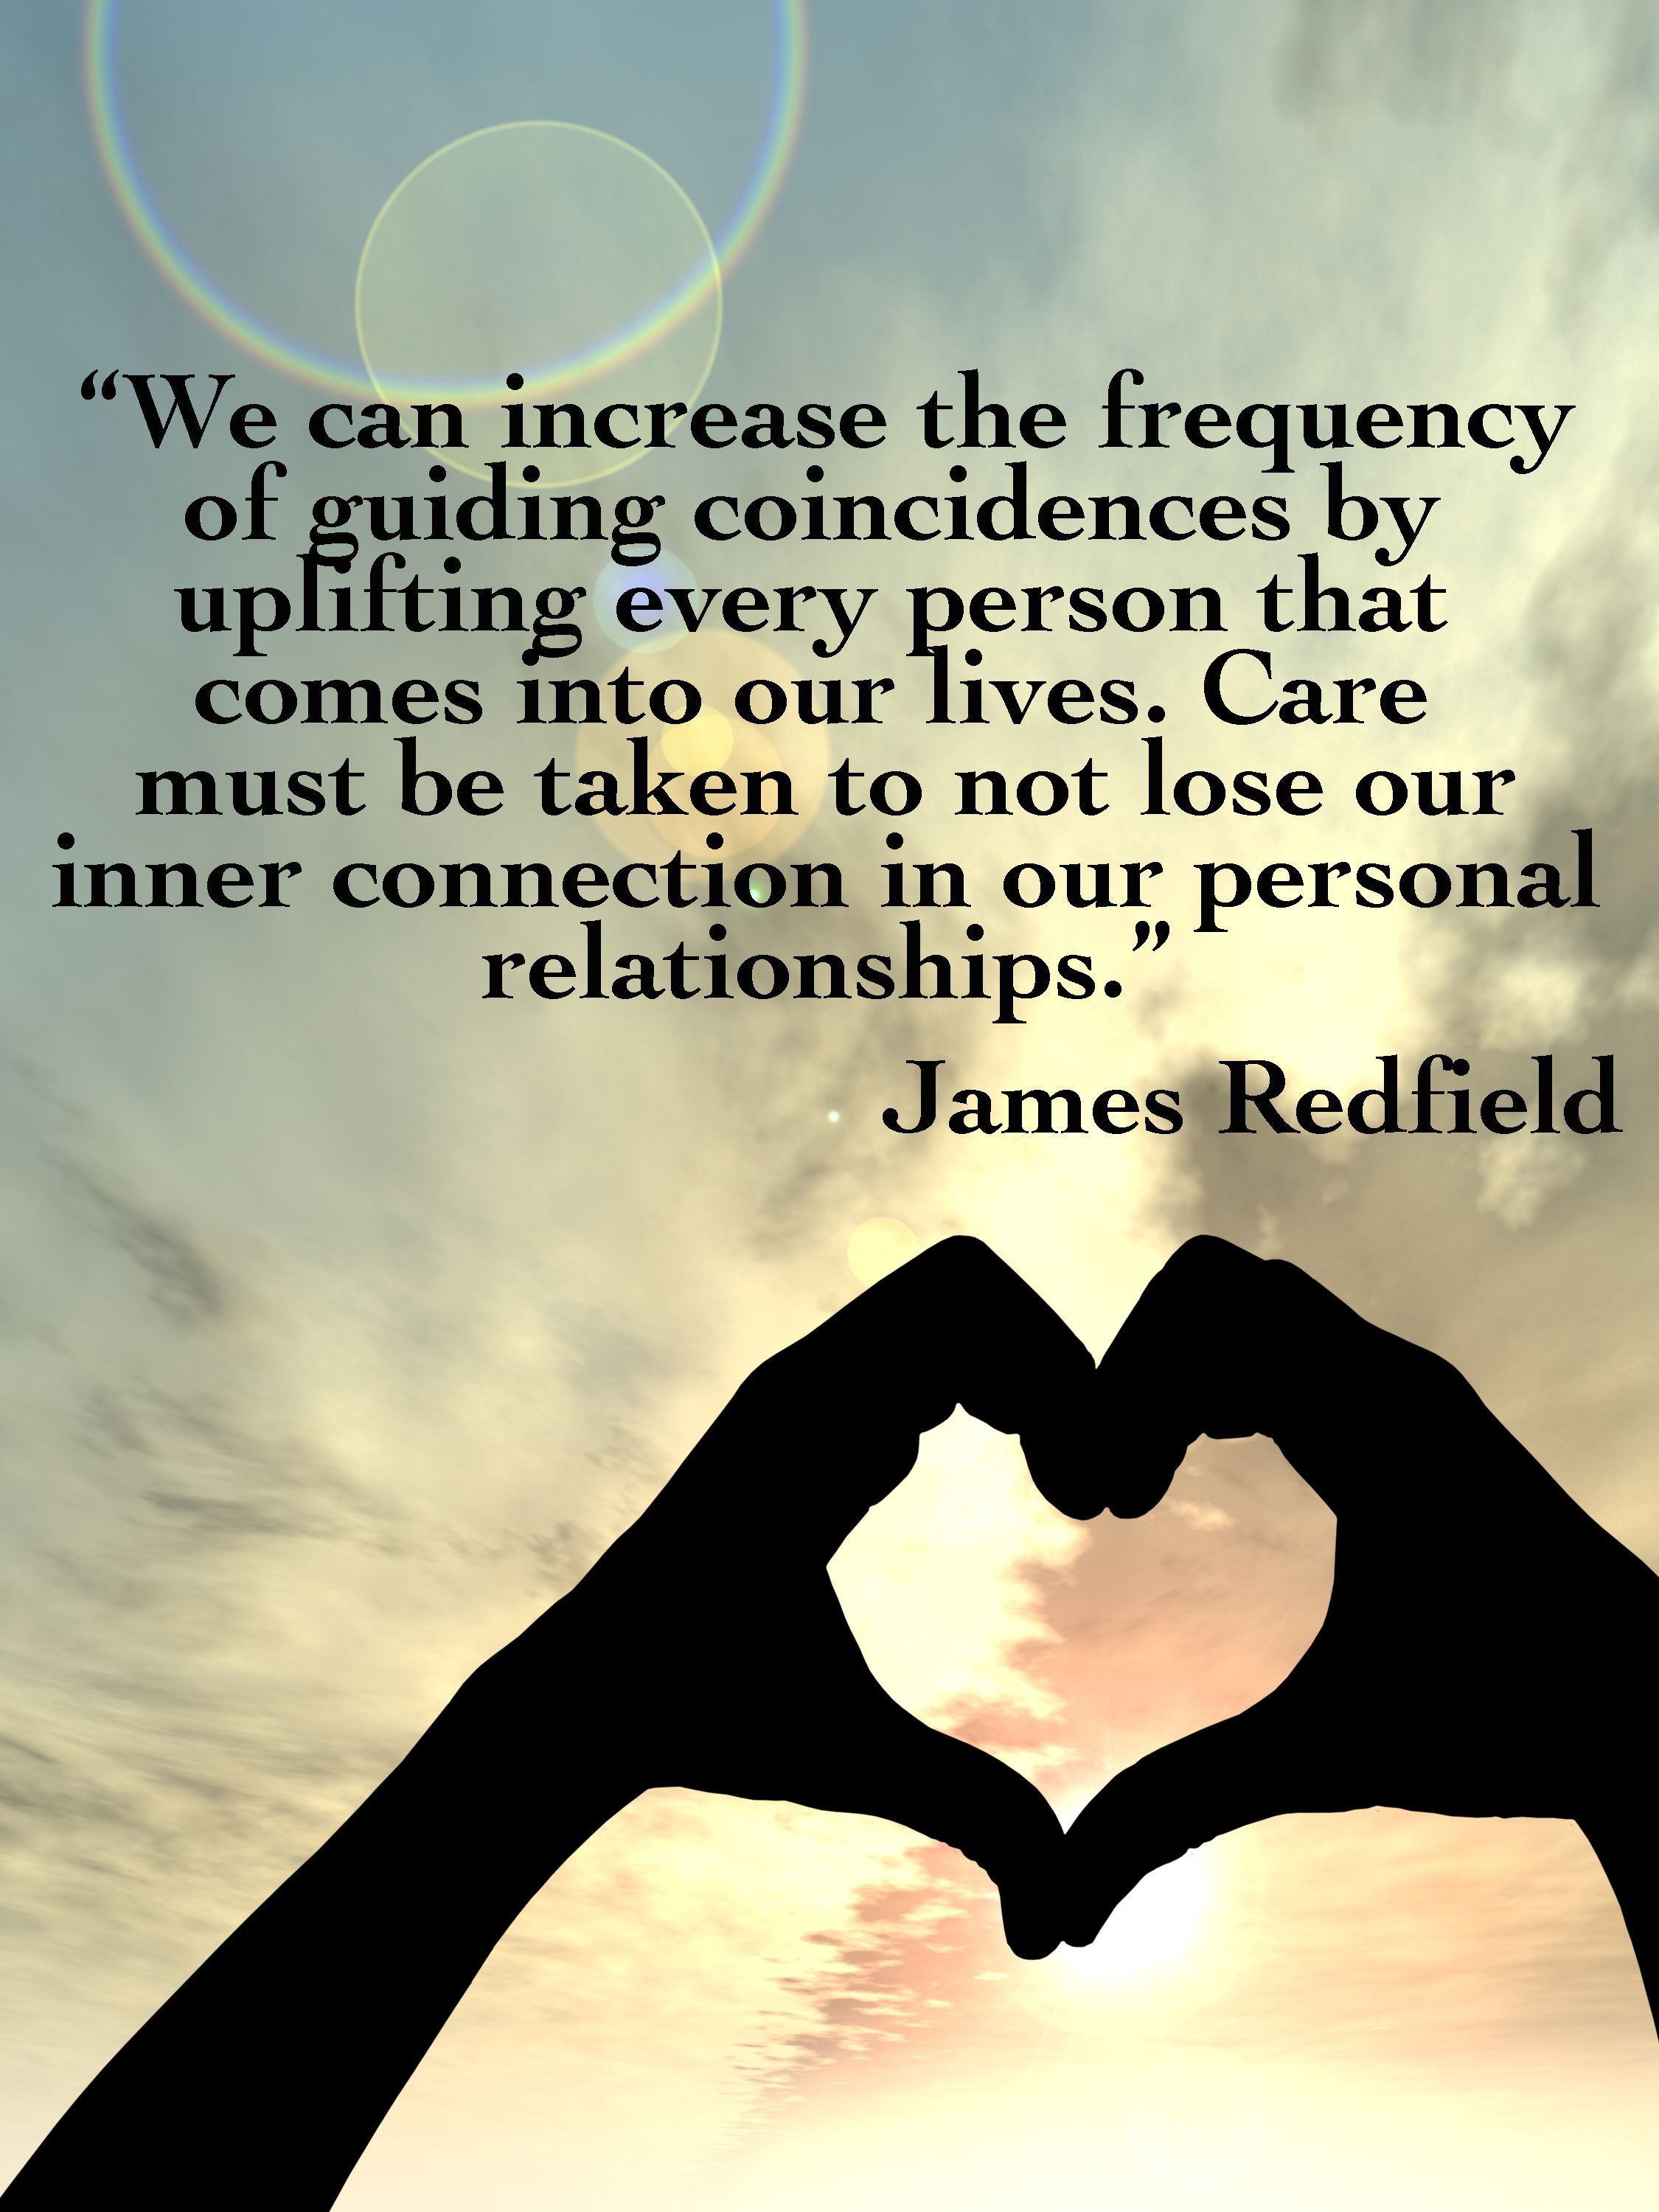 Spiritual Inspirational Quotes Captivating Inspirational And Spiritual Quotesjames Redfield  Celestine